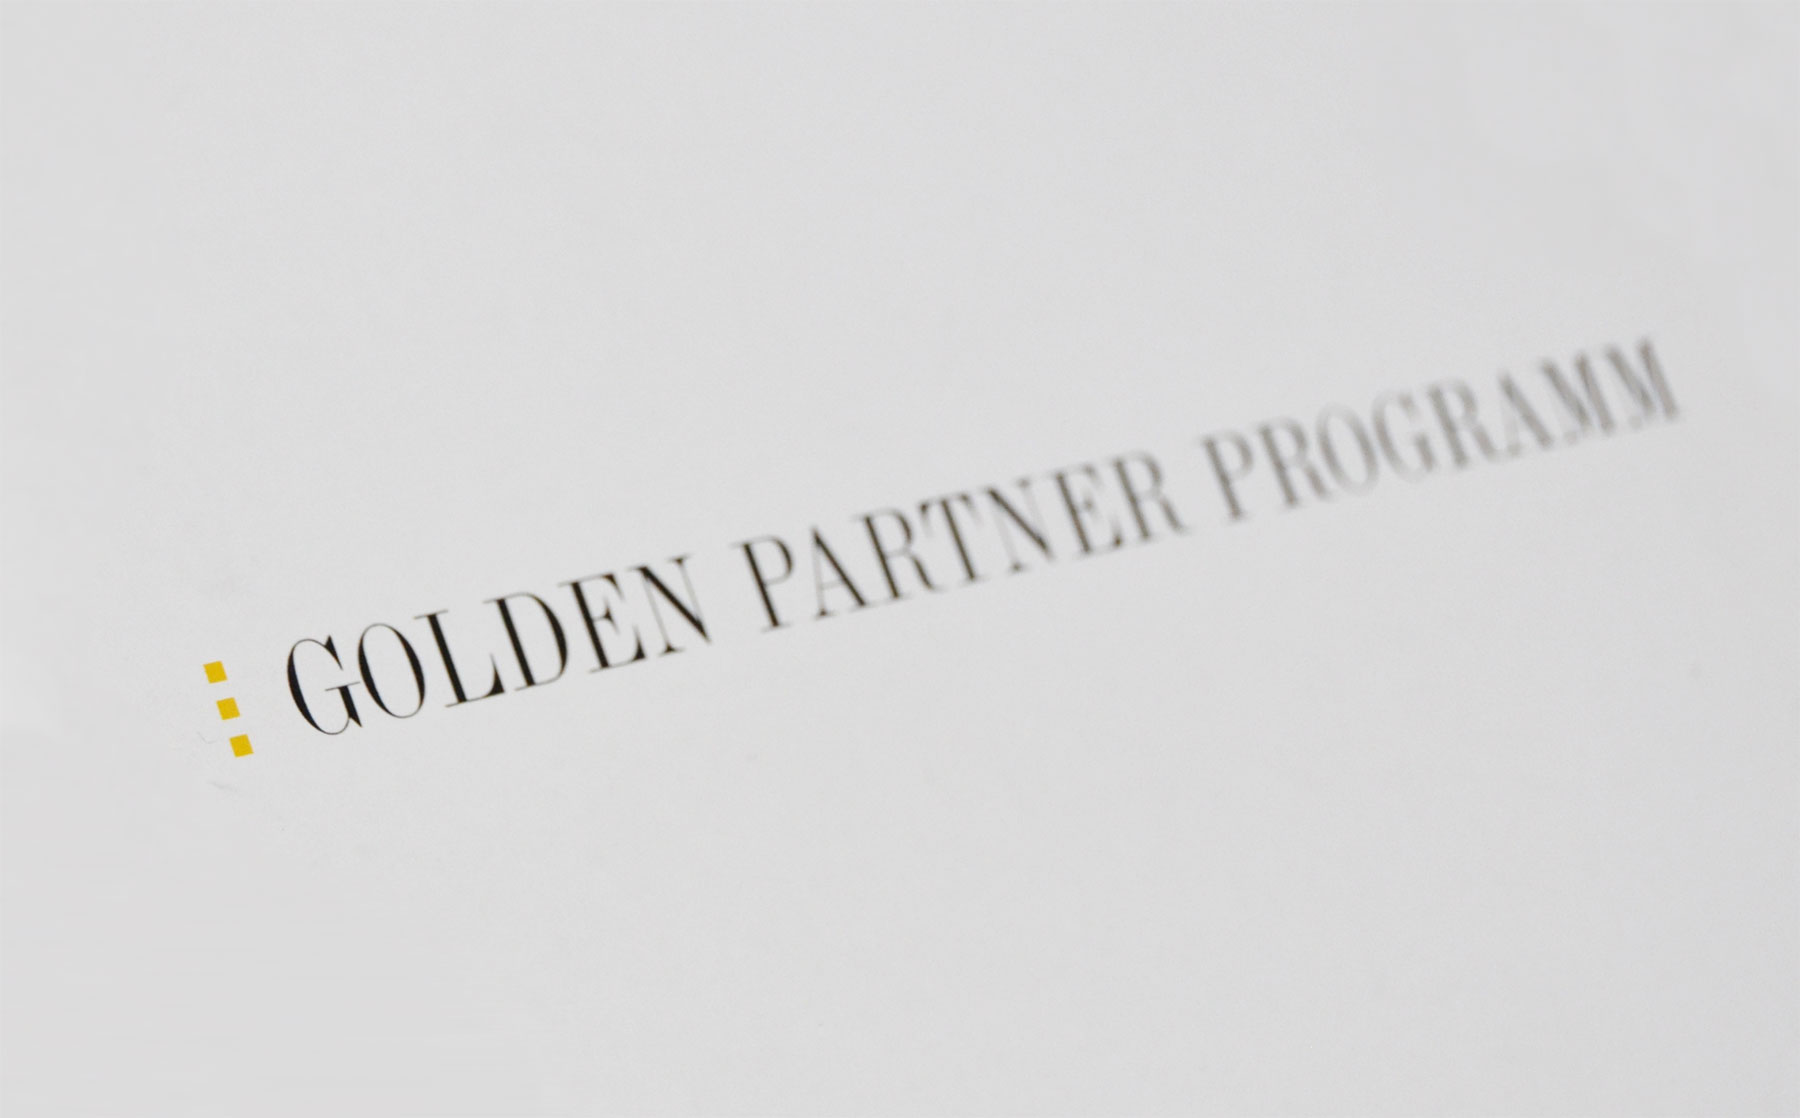 Golden Partner Programm